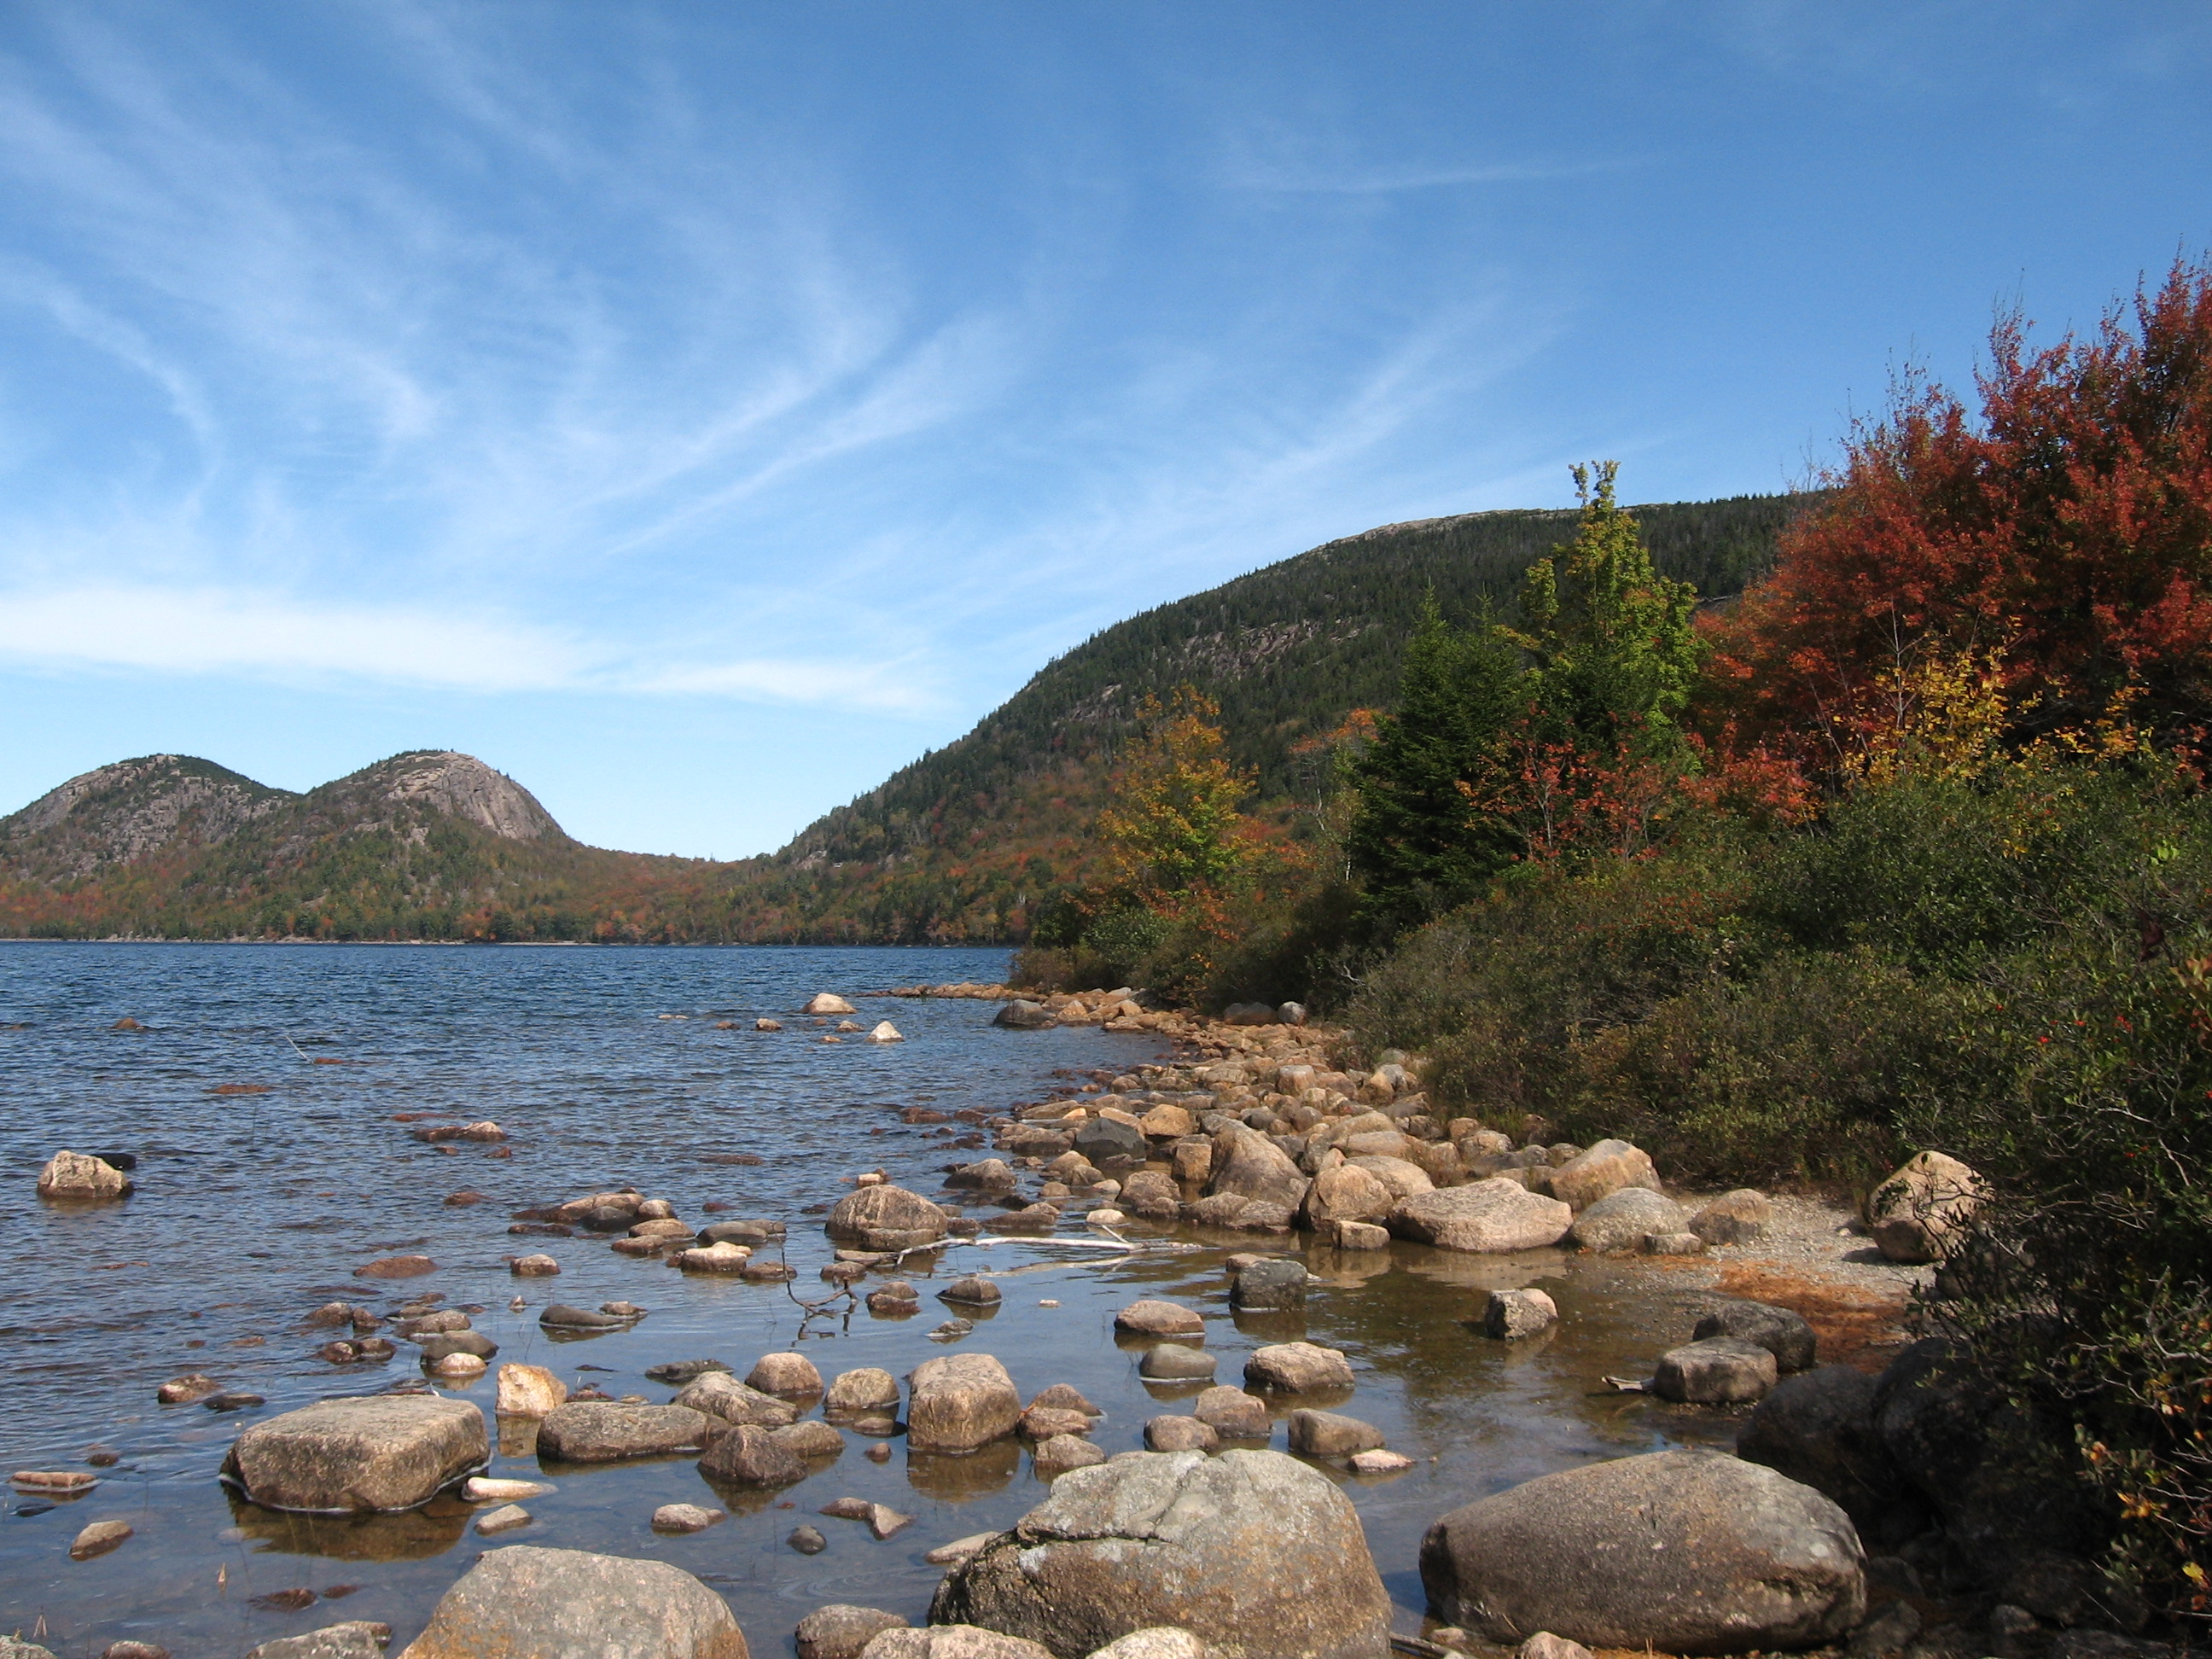 8-Day East Coast & Acadia National Park Deluxe Tour from Boston with Airport Transfers